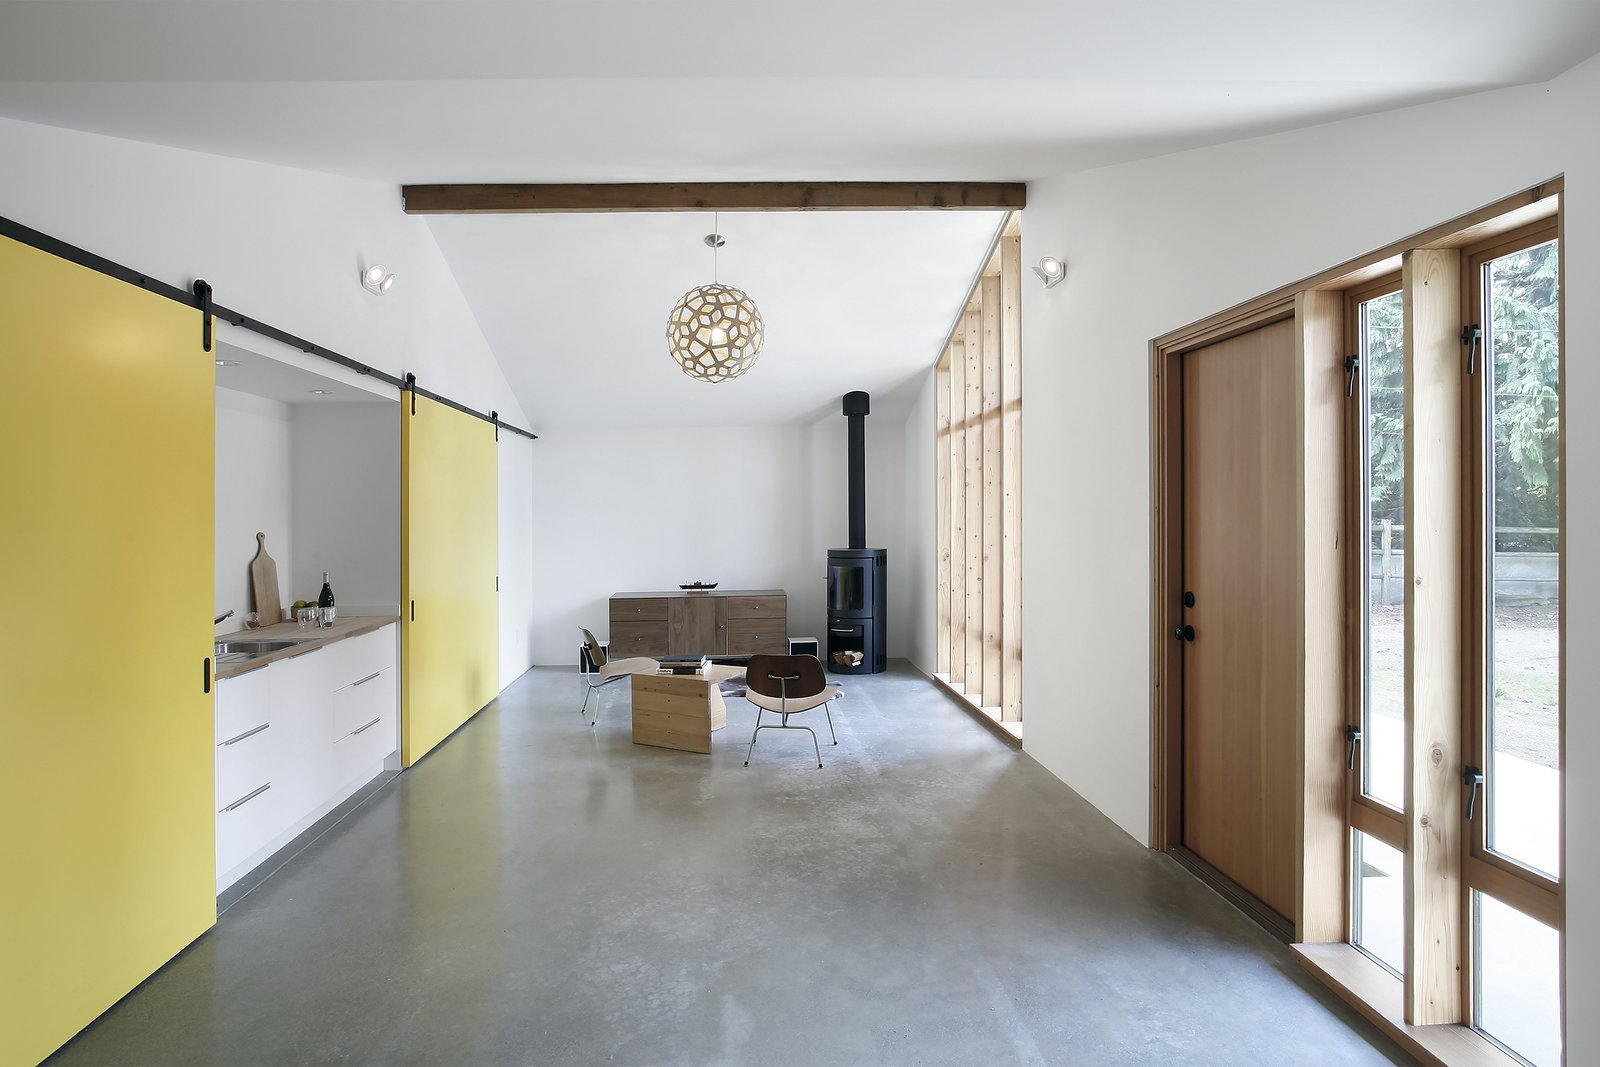 10 Modern Barn Door Ideas You Wouldn't Expect